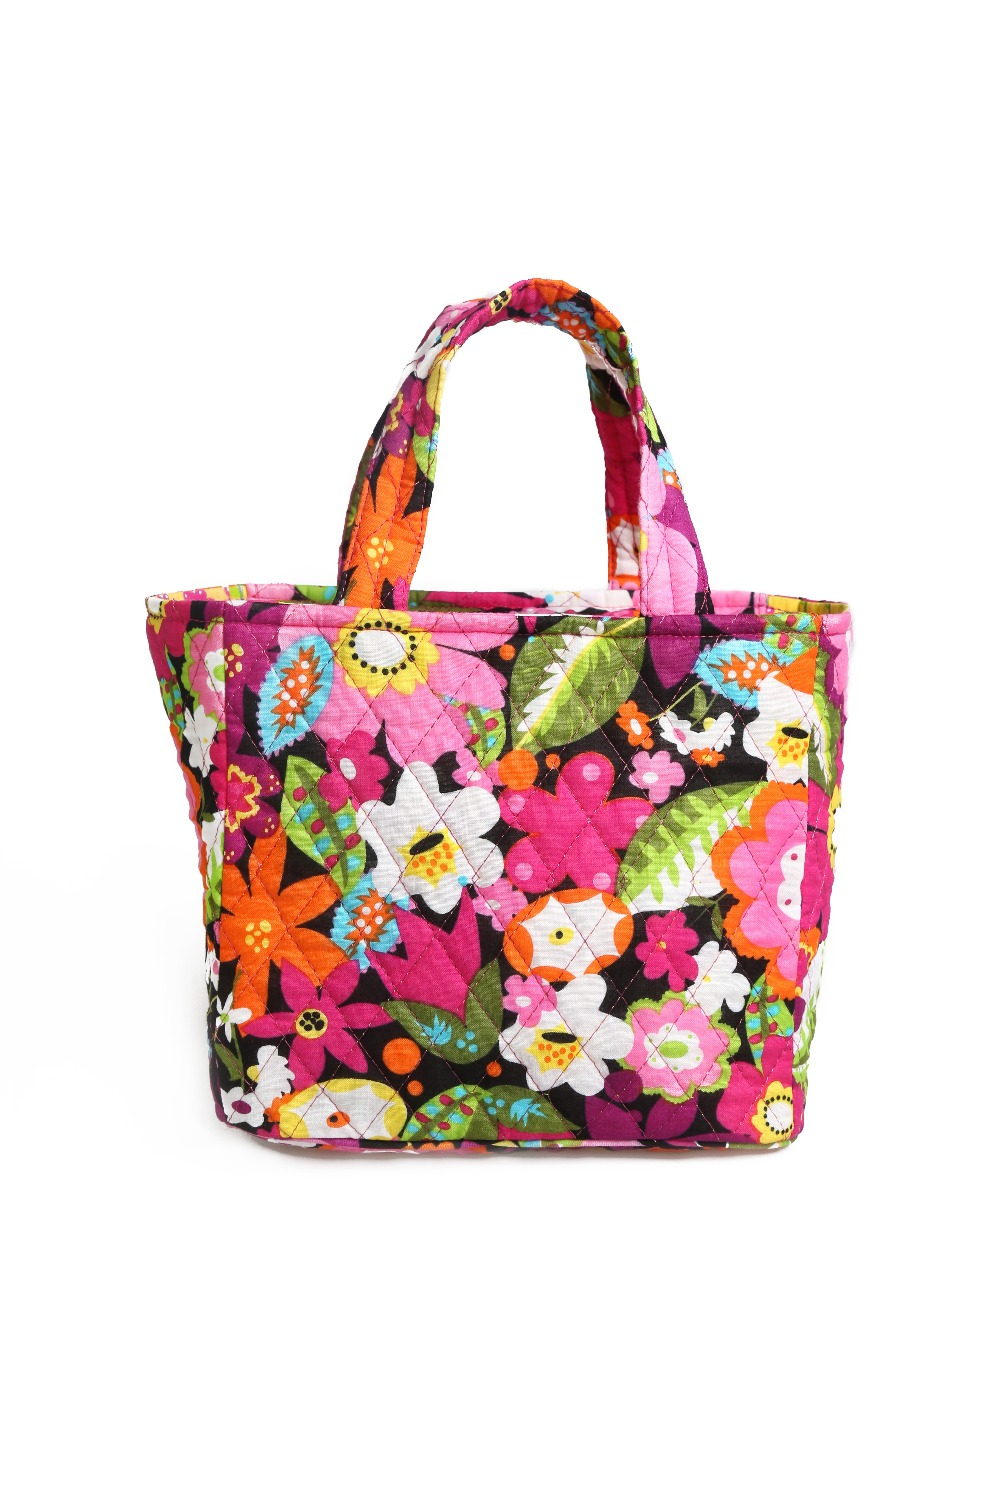 high focus of concern handbags, cotton floral quilted casual beach charles and keith handbags,colombia handbags